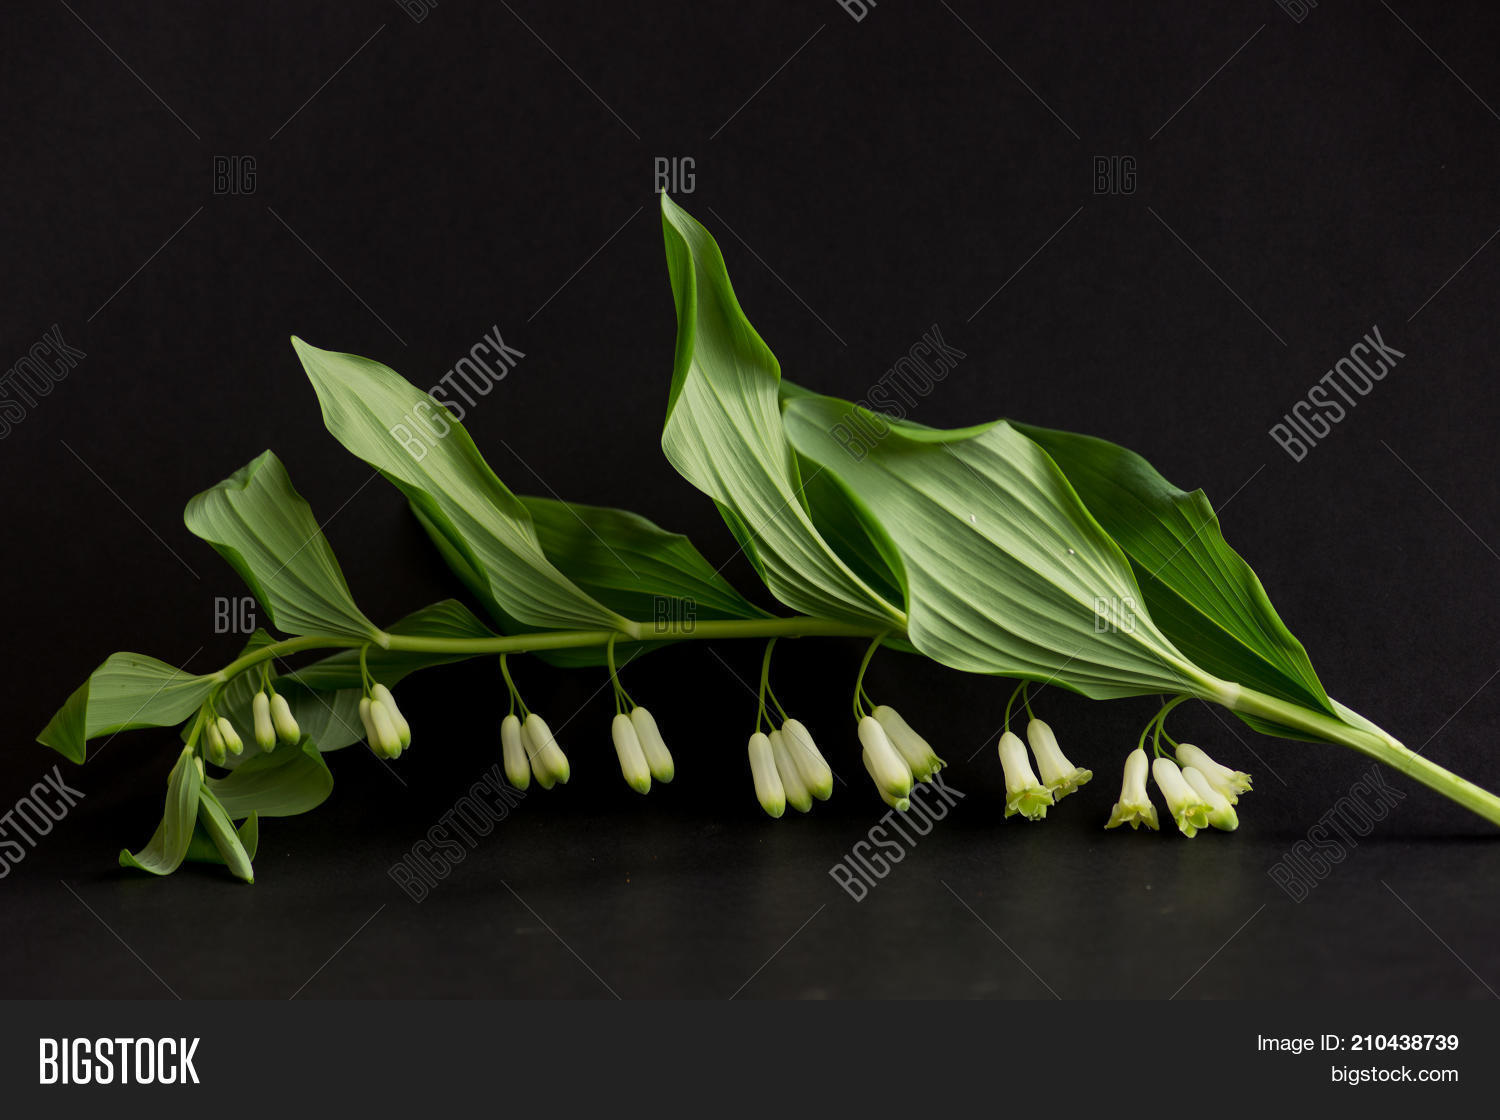 Little White Bell Image Photo Free Trial Bigstock